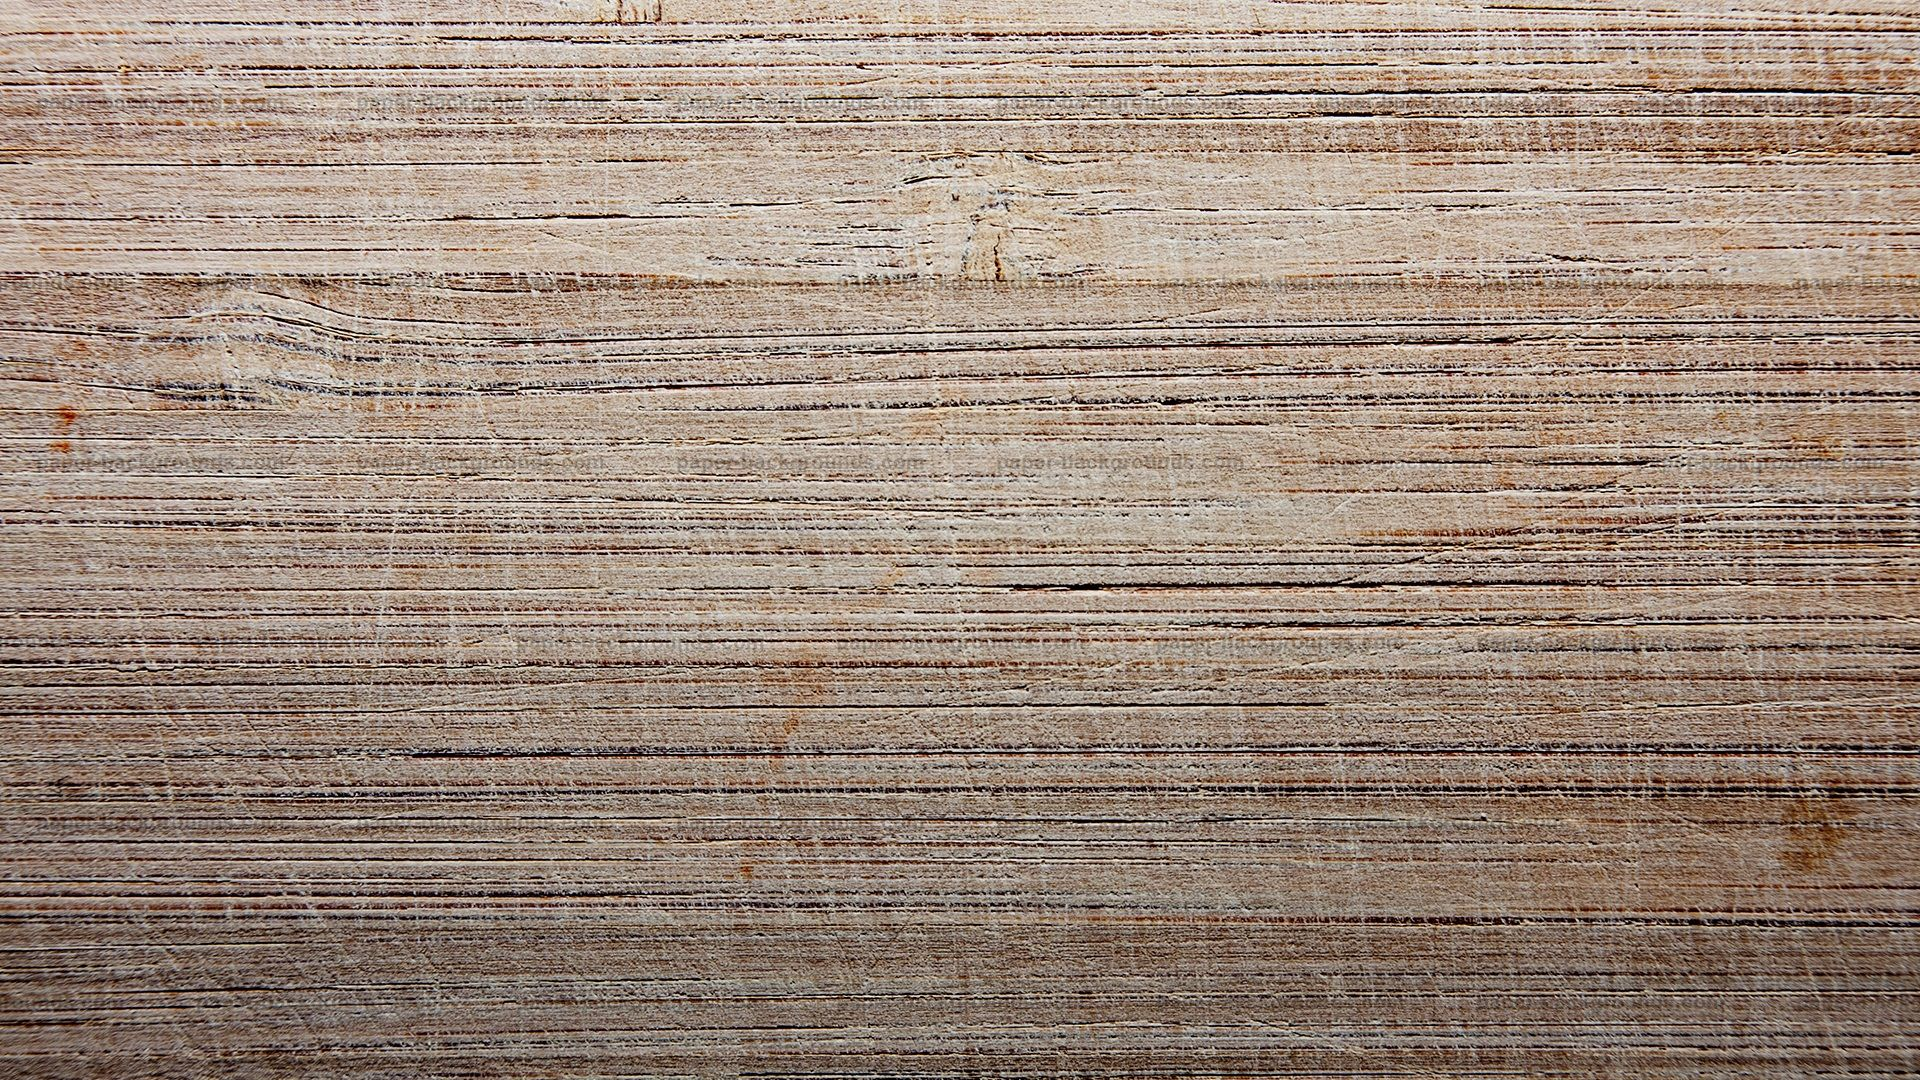 Wood Google Search Wood Texture Background Light Wood Texture Old Wood Texture